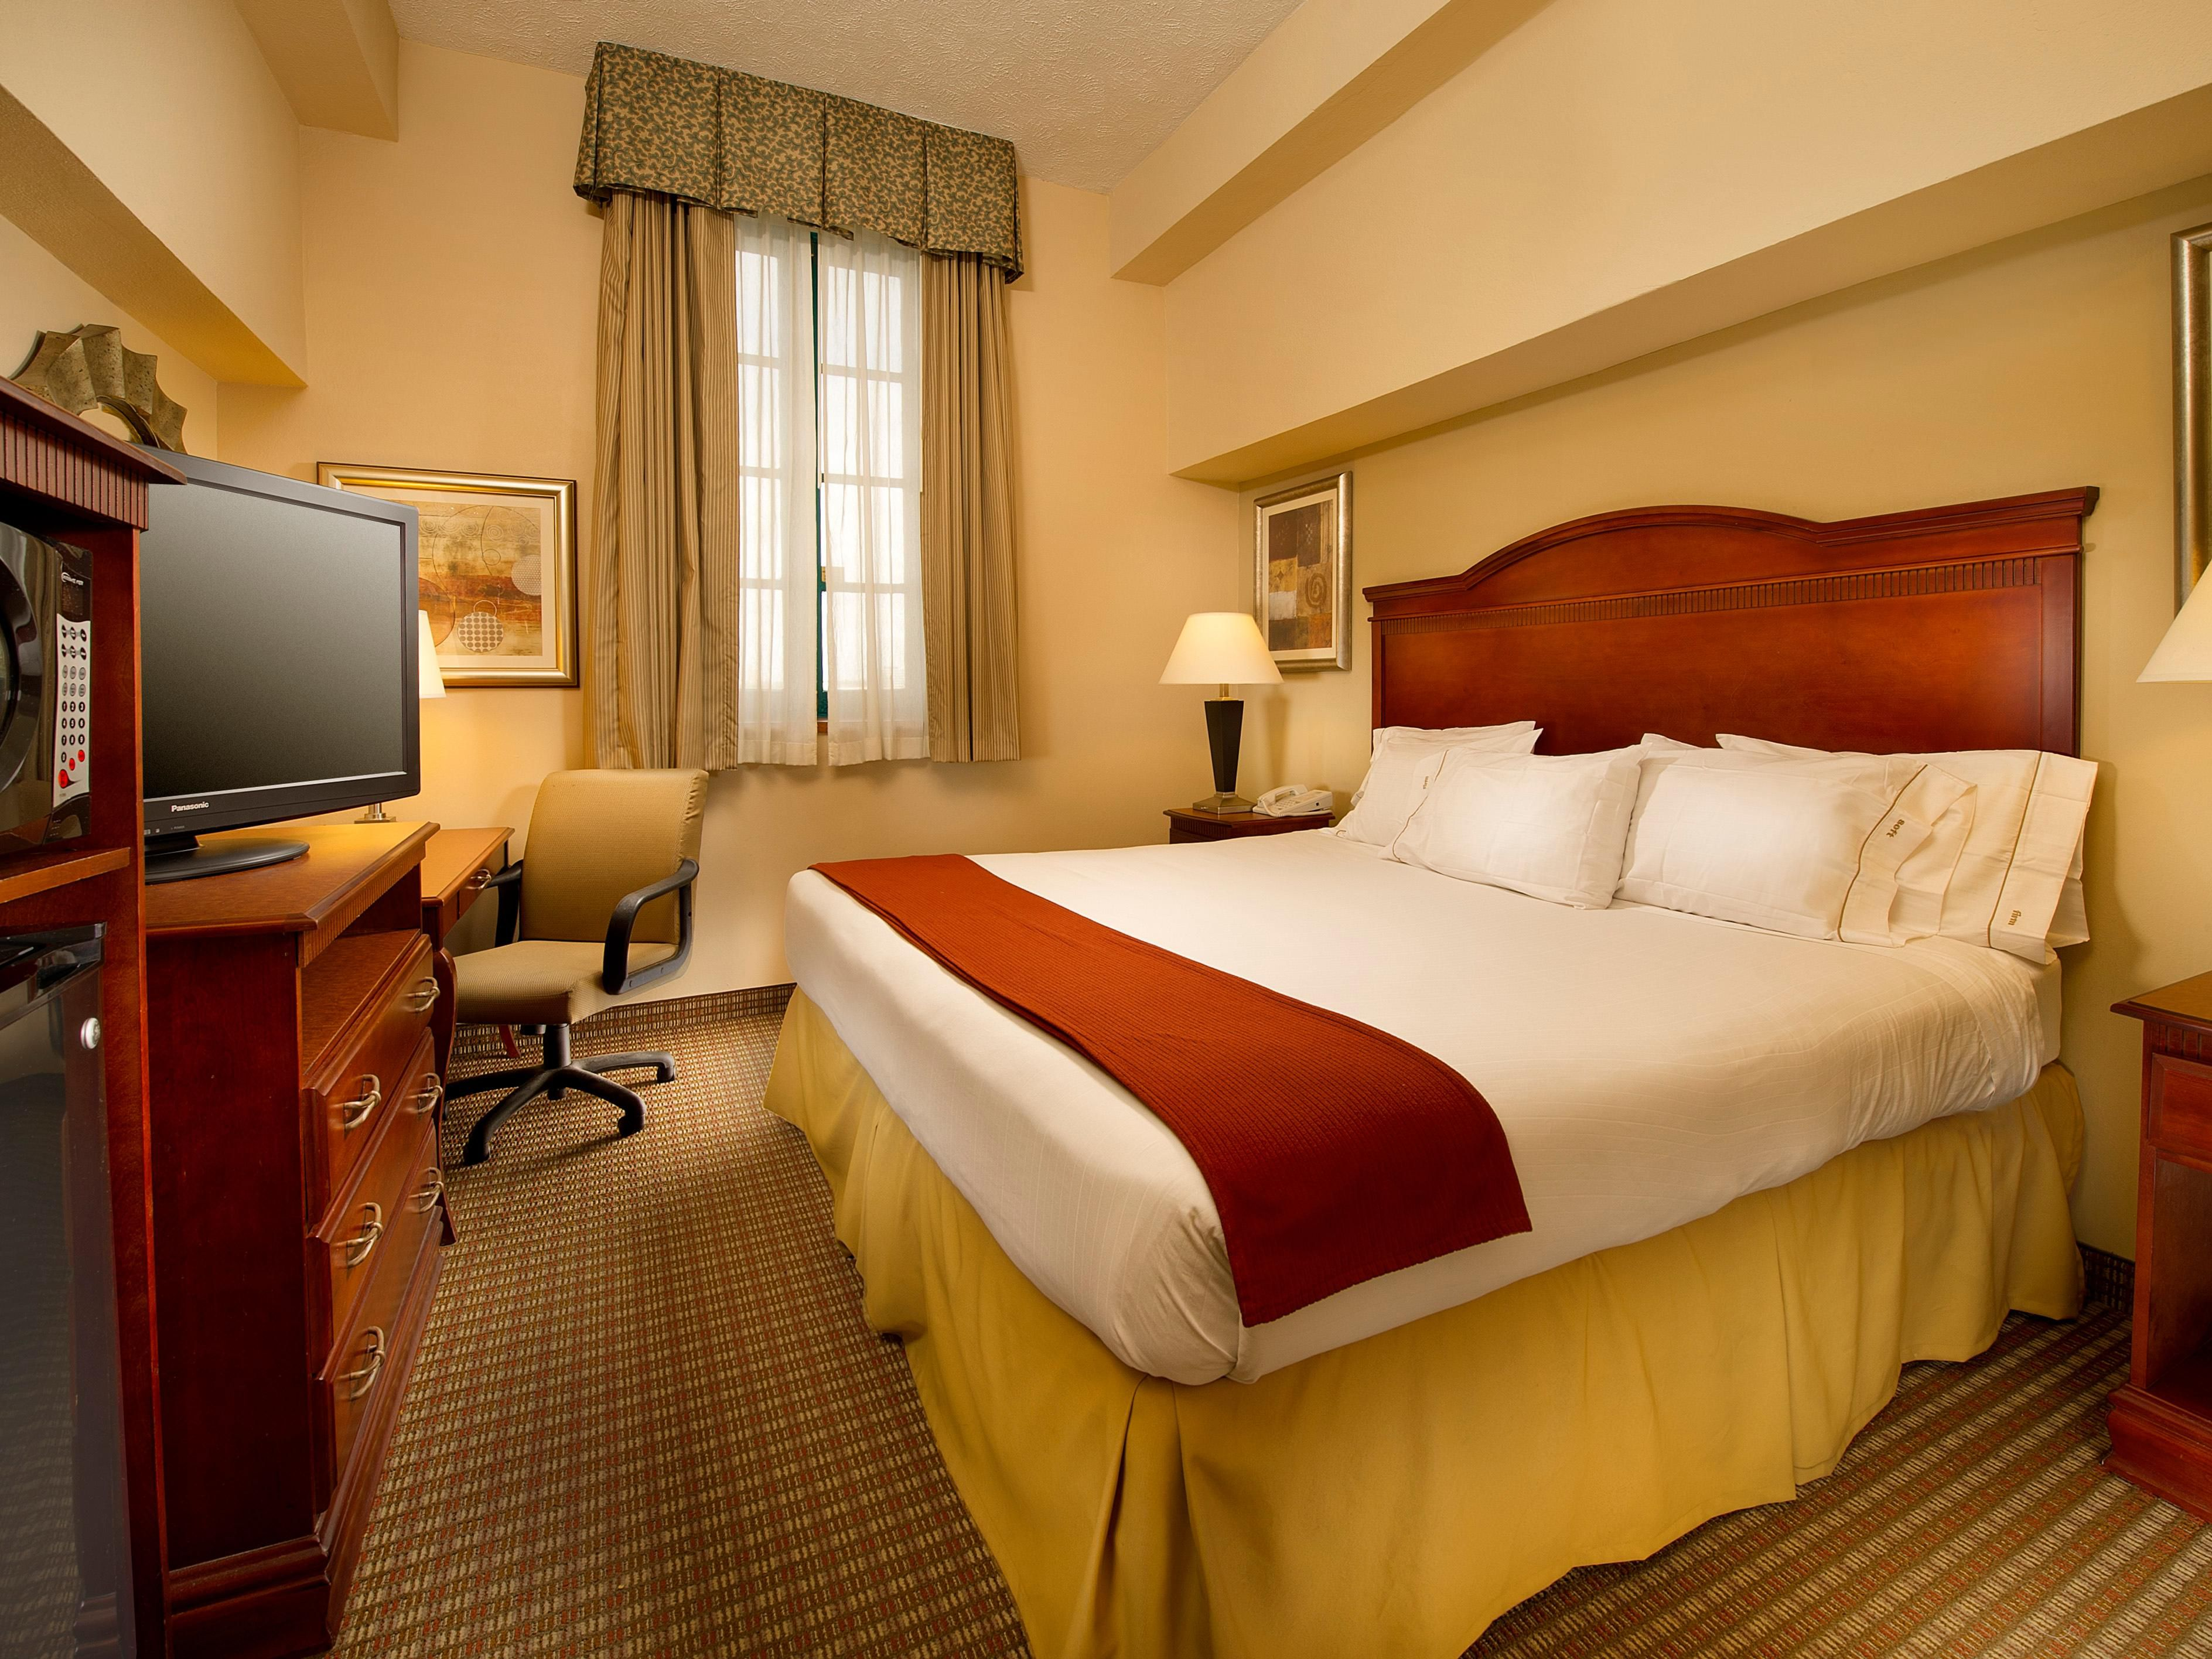 Enjoy a good night's sleep in our king size beds.